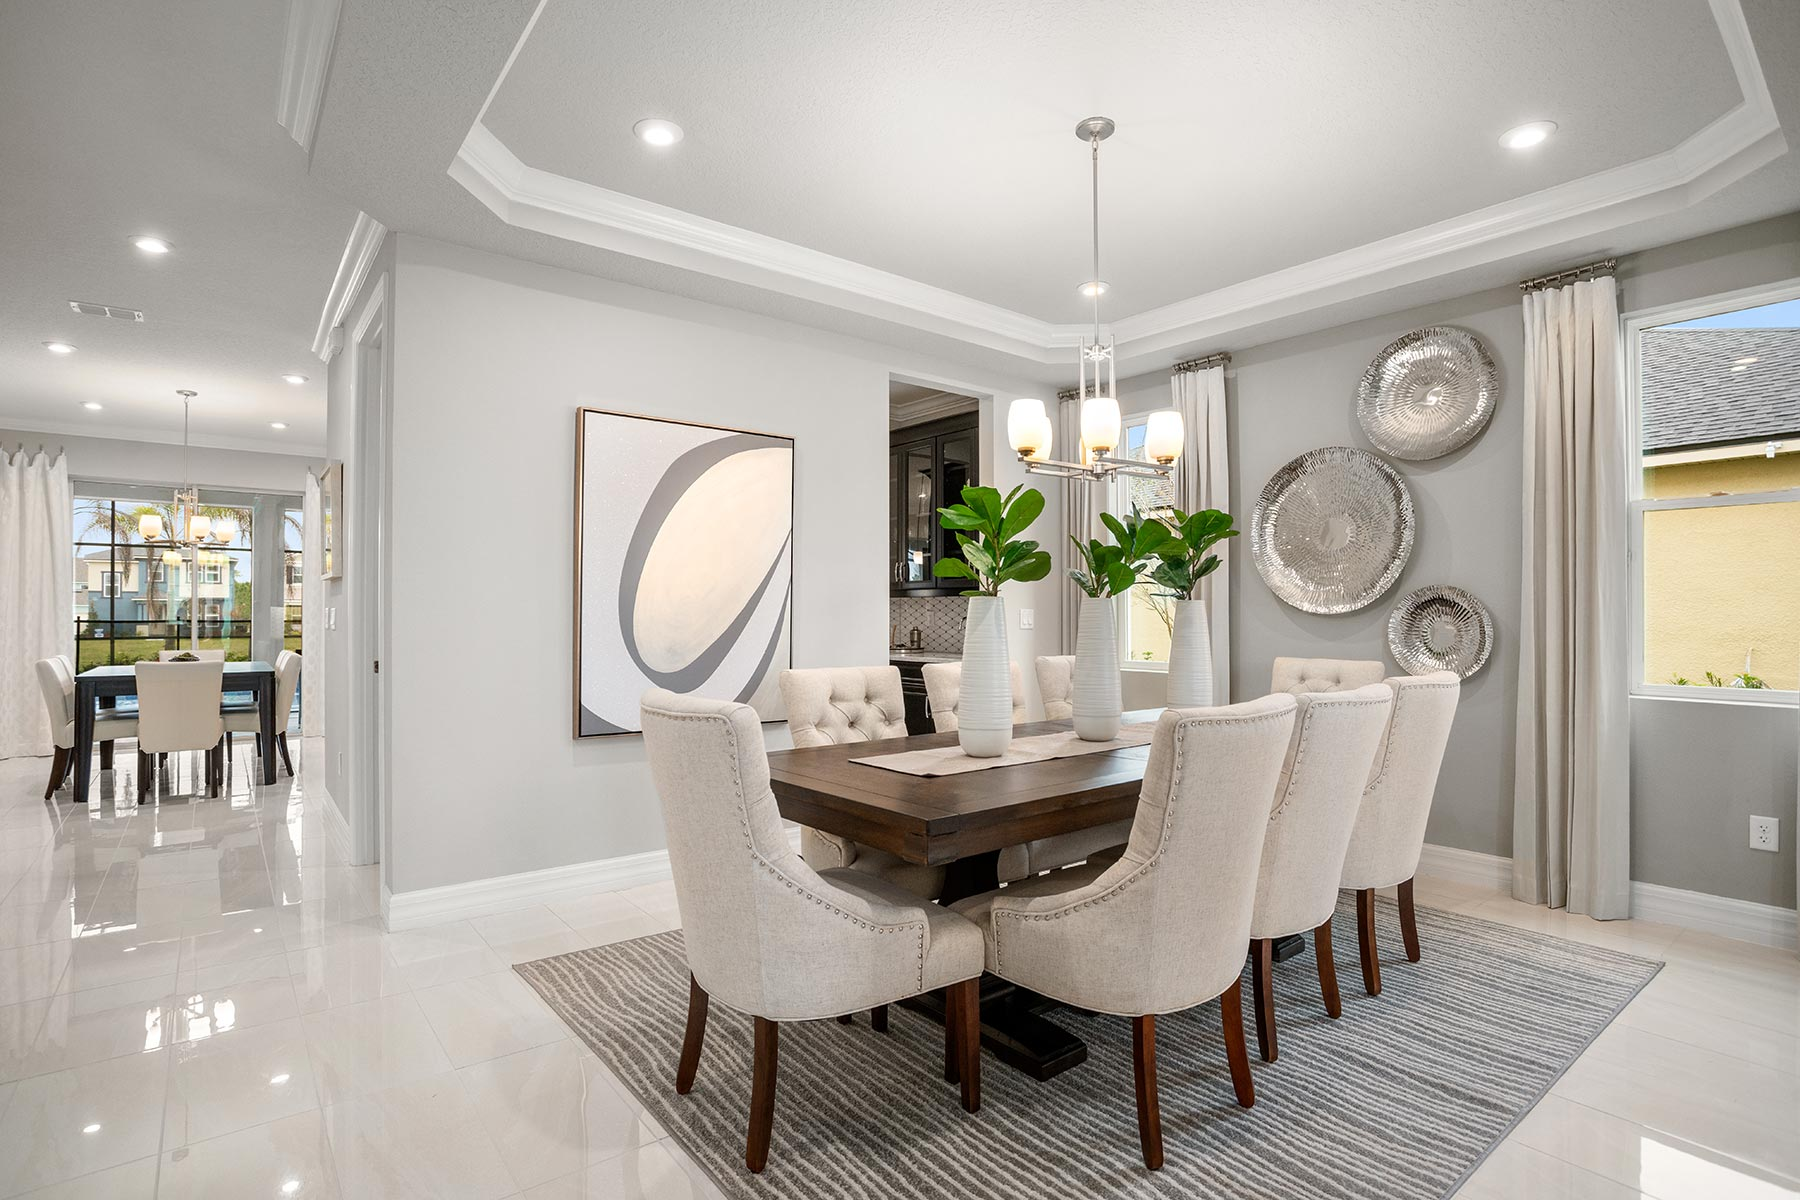 Winthrop Plan Dining at Tapestry in Kissimmee Florida by Mattamy Homes